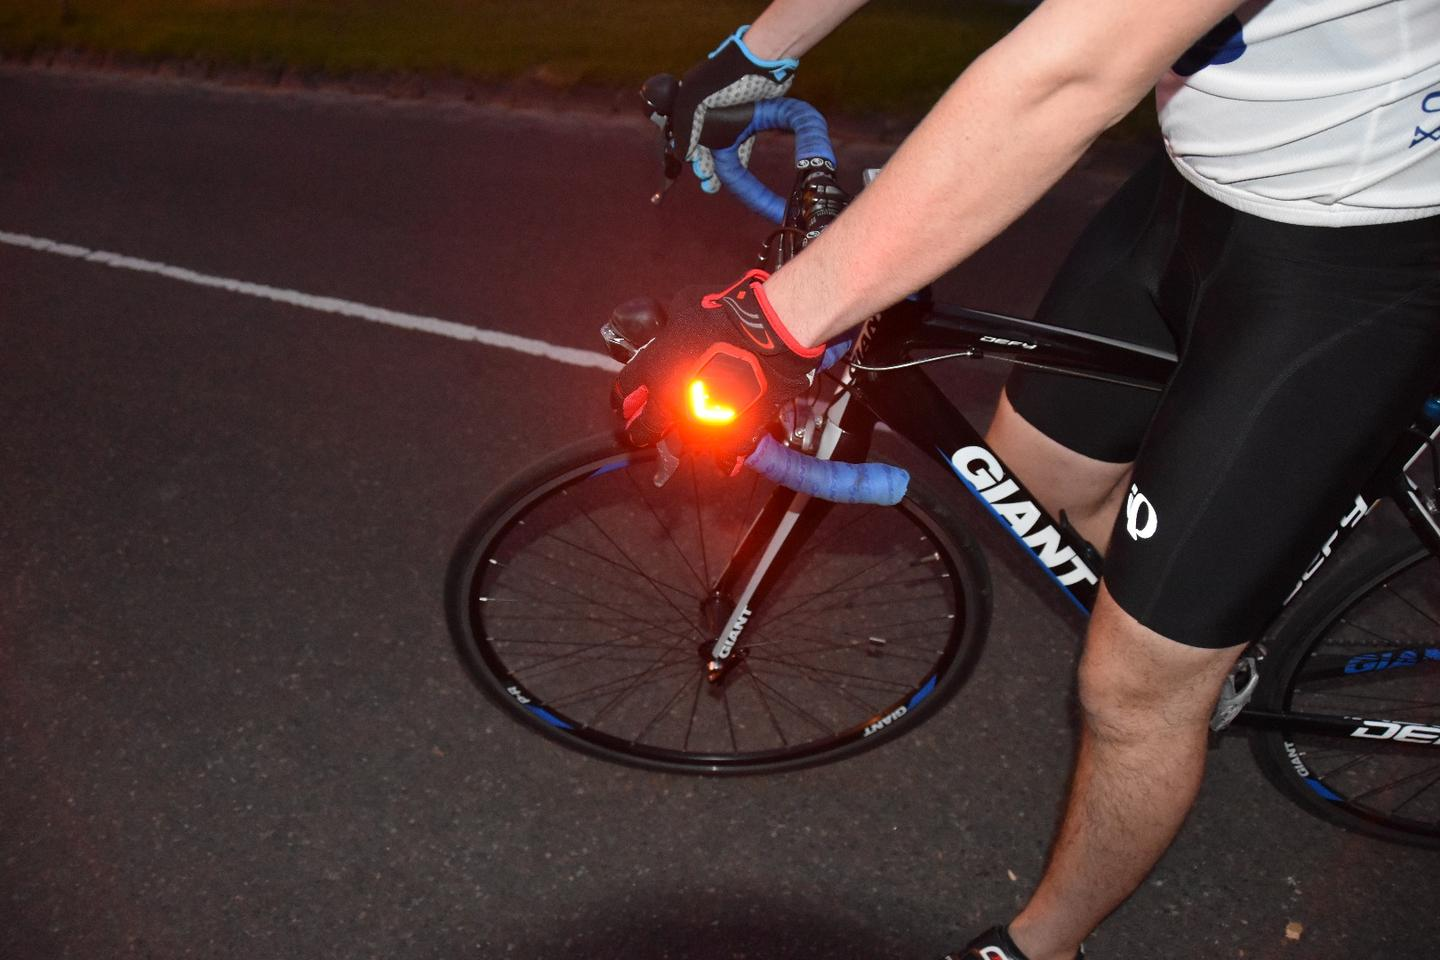 beSEEN gloves' LEDs can be left on, to act as running lights